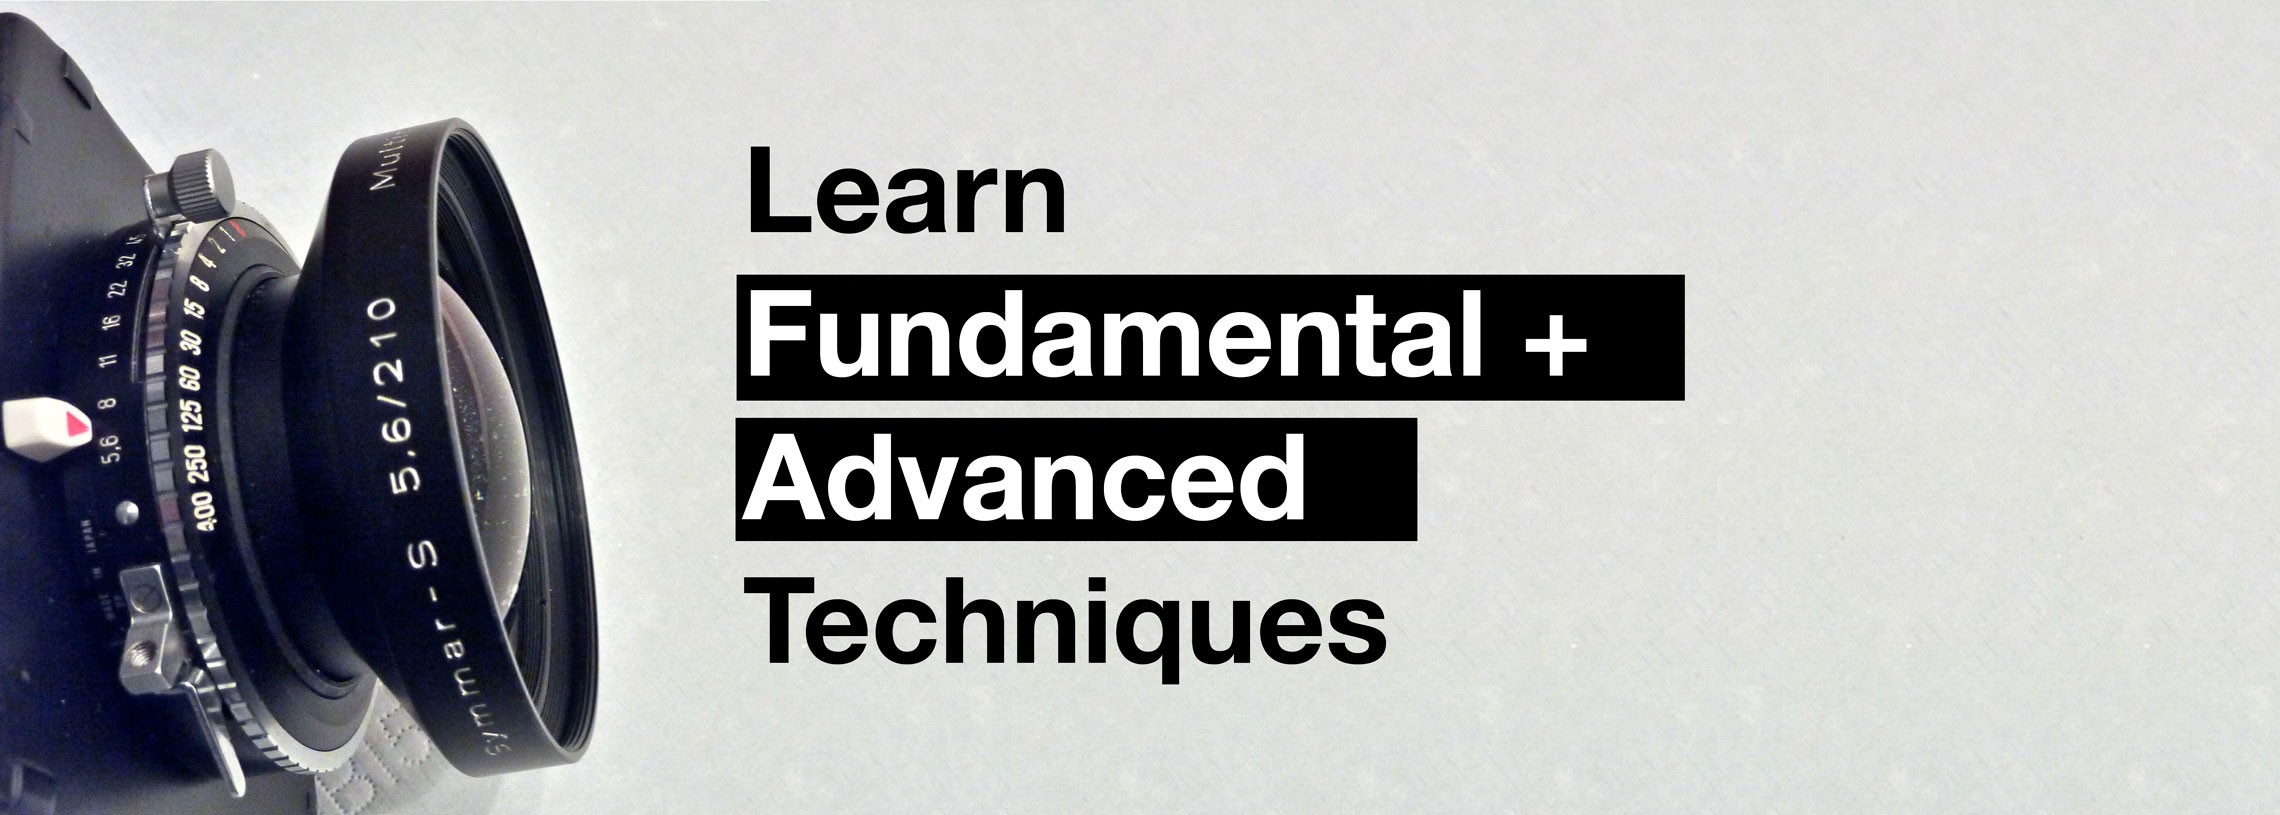 learn-fundamental-and-advanced-techniques